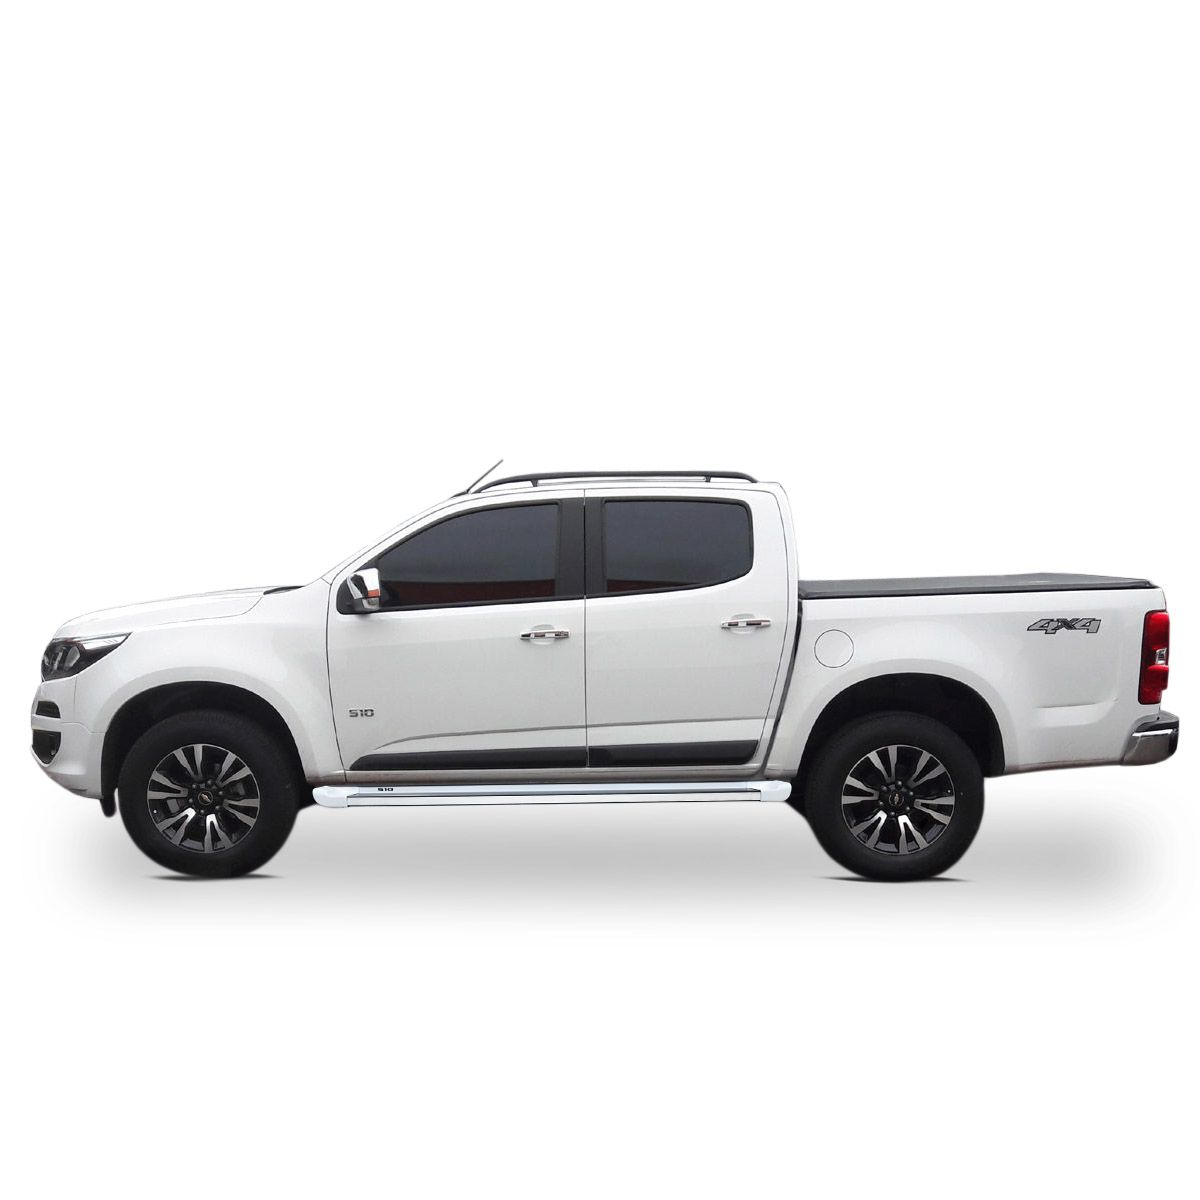 Estribo Lateral S10 CD 2012 a 2020 Branco Summit Personalizado